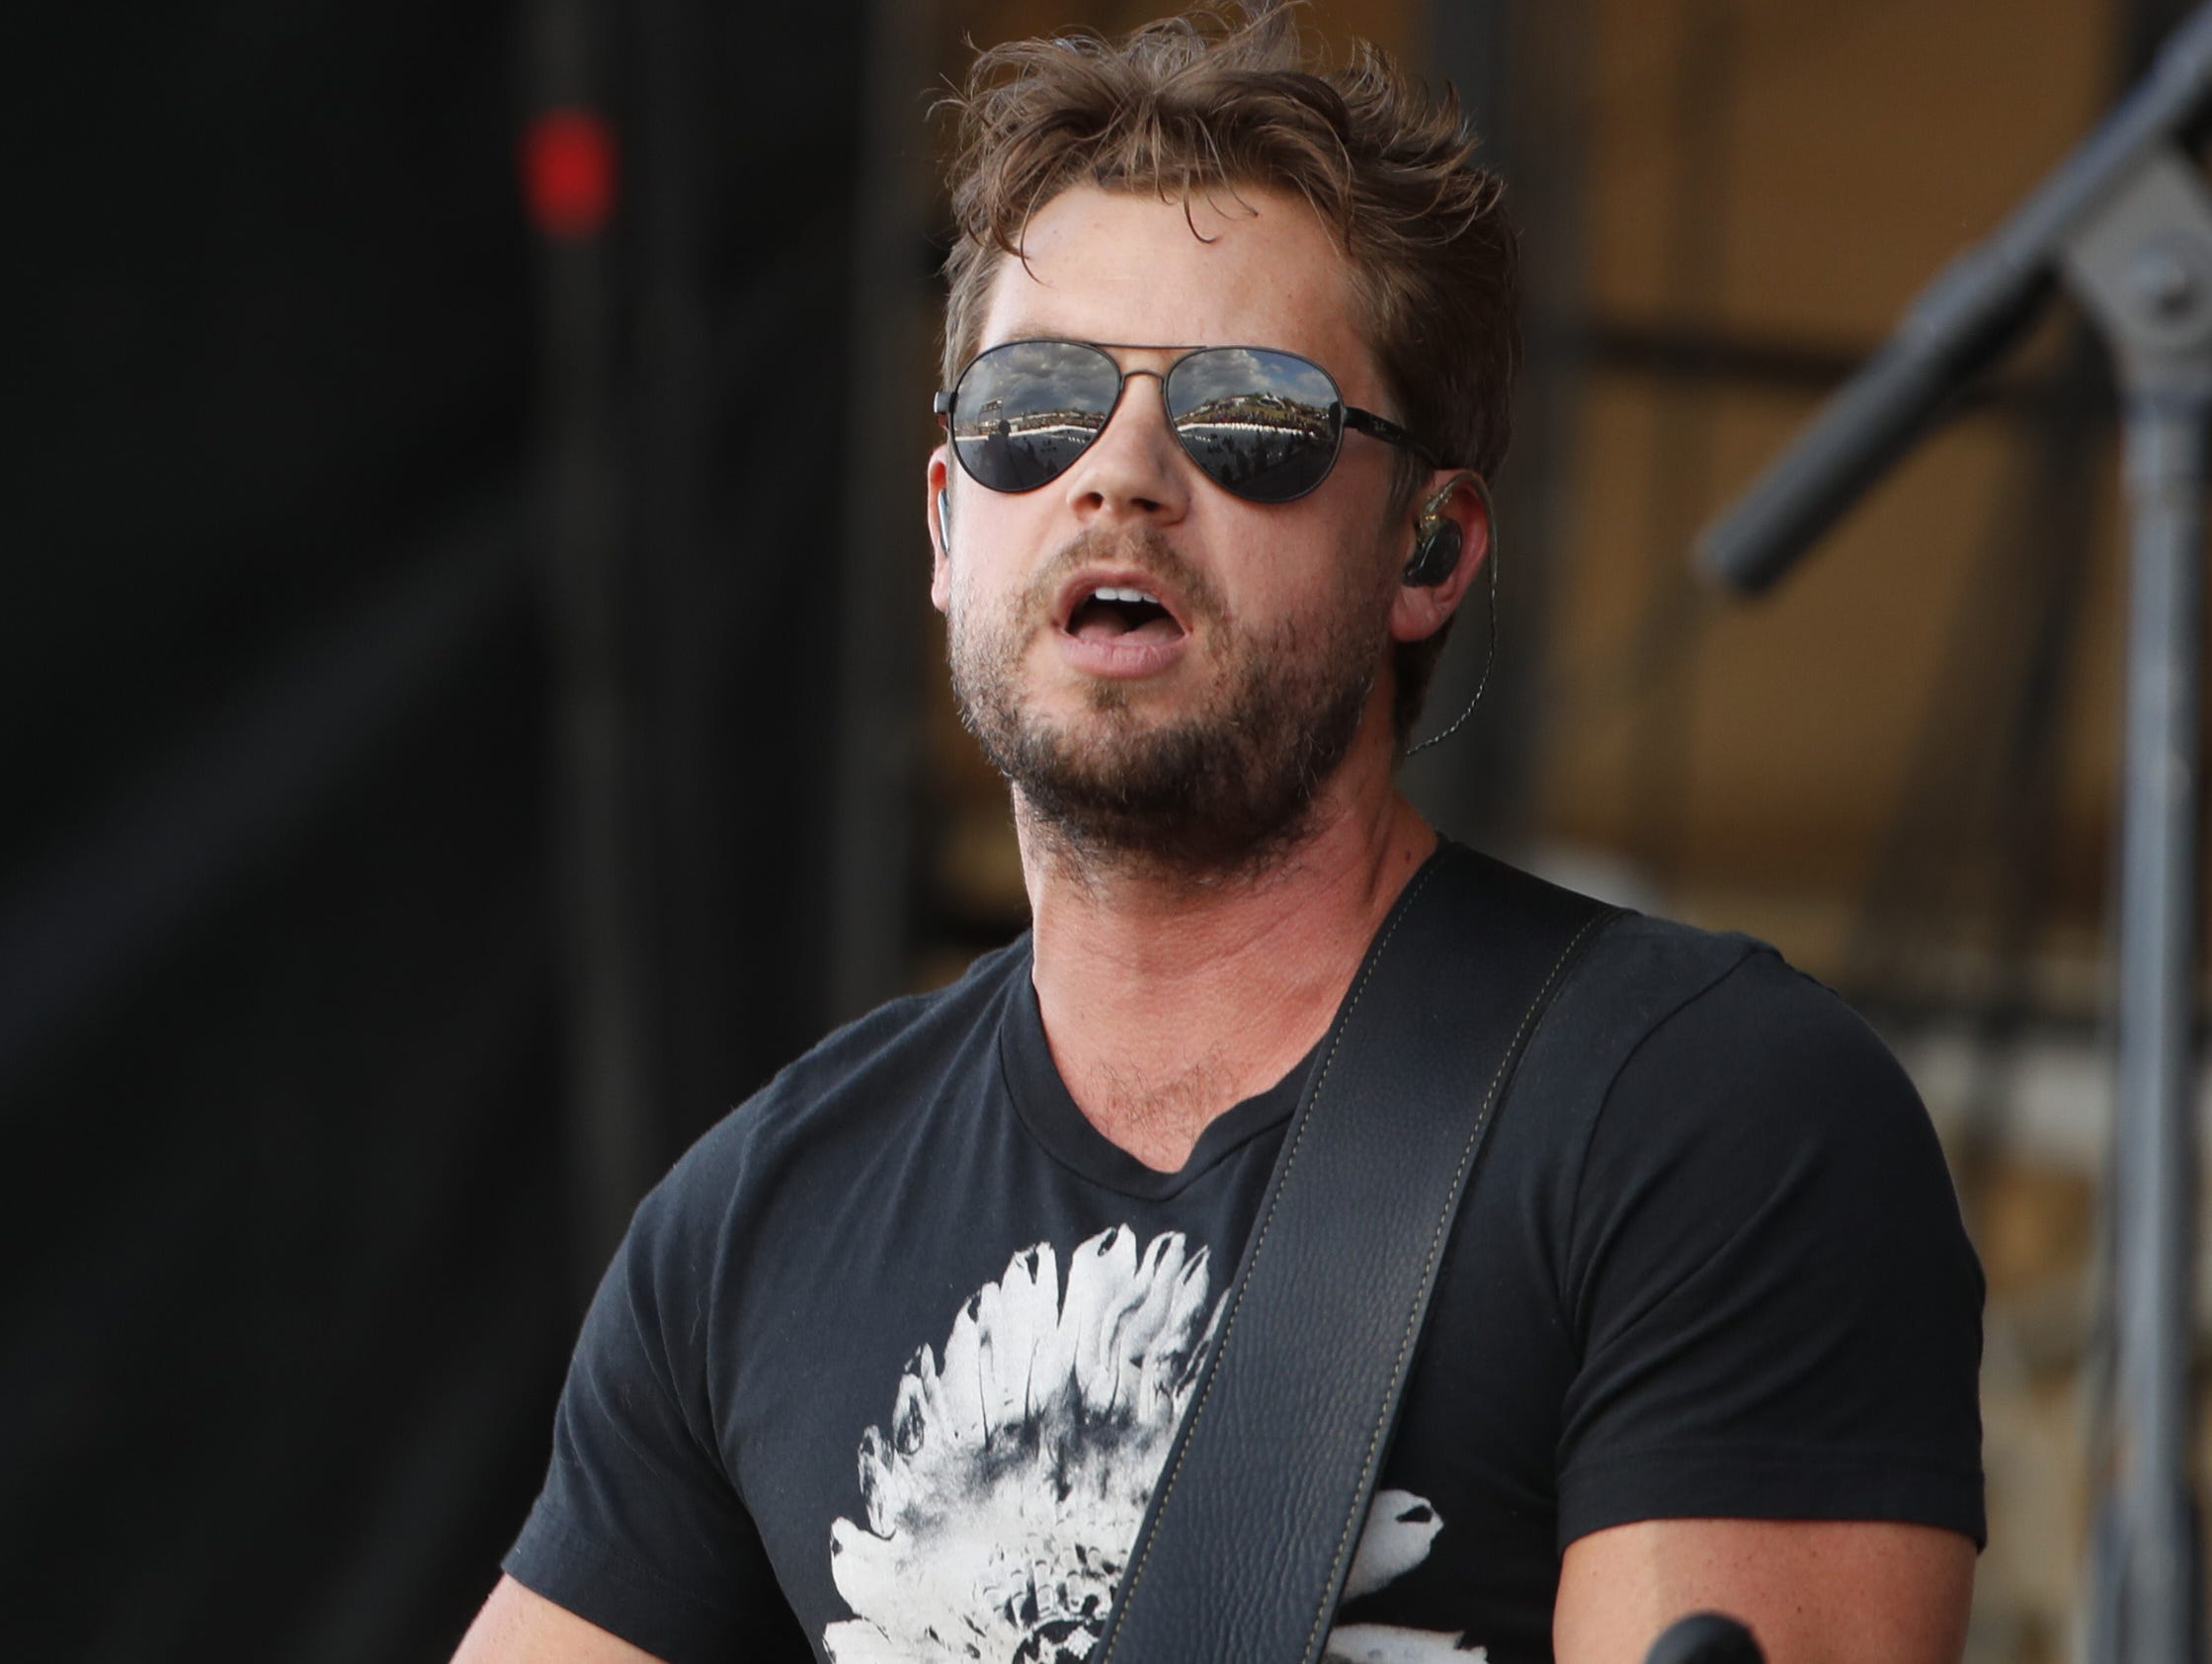 Country musician Brandon Lay performs on the Main Stage during Country Thunder in Florence, Ariz. on Friday, April 12, 2019.